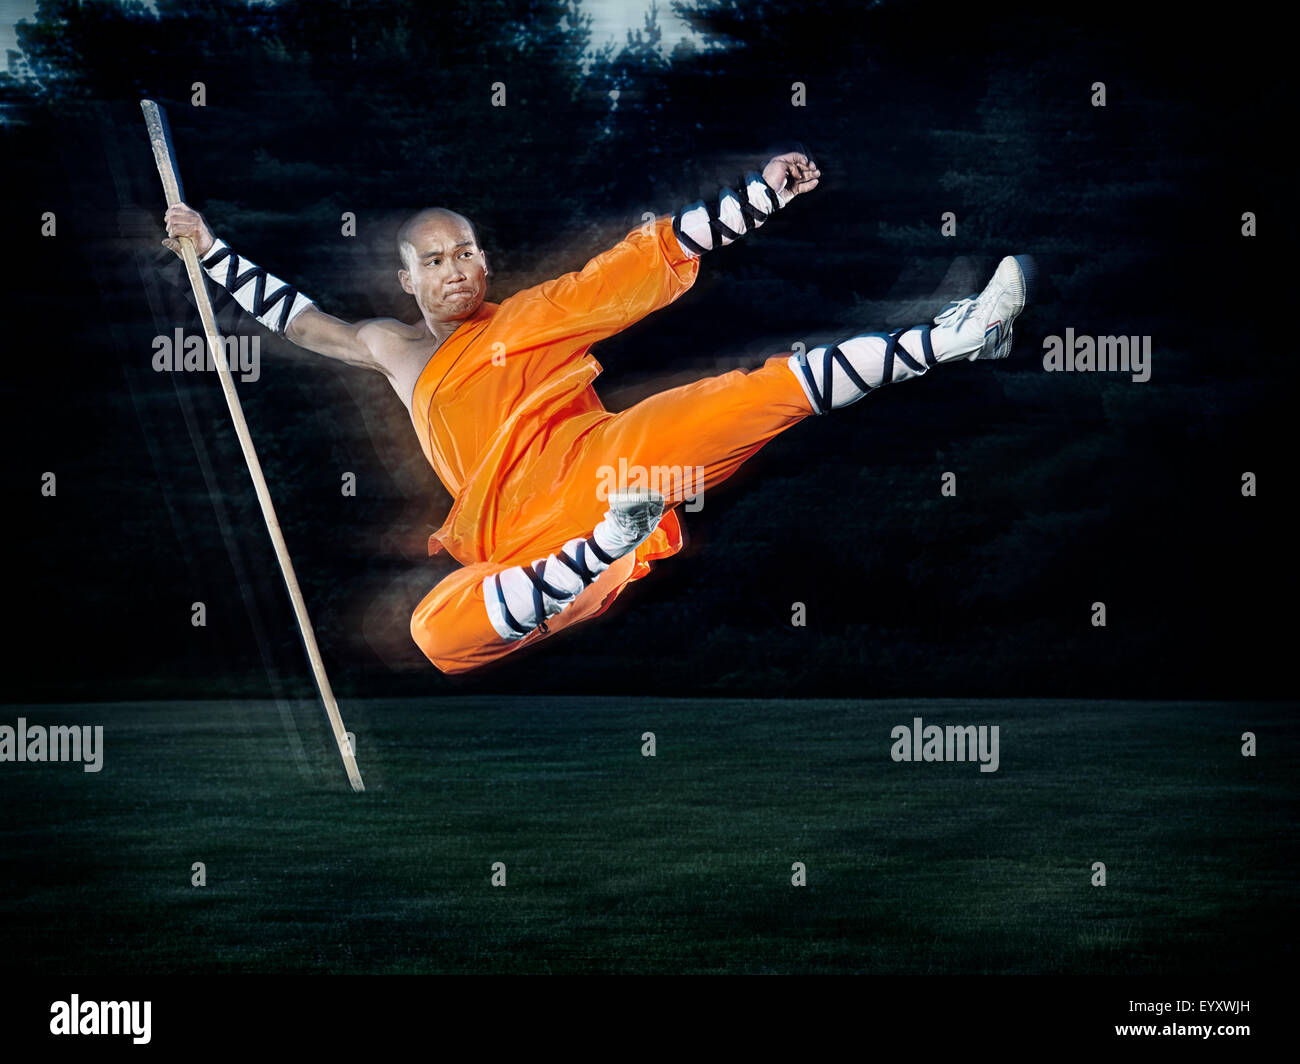 Shaolin warrior monk in mid-air flying kick jump with a staff outdoors - Stock Image